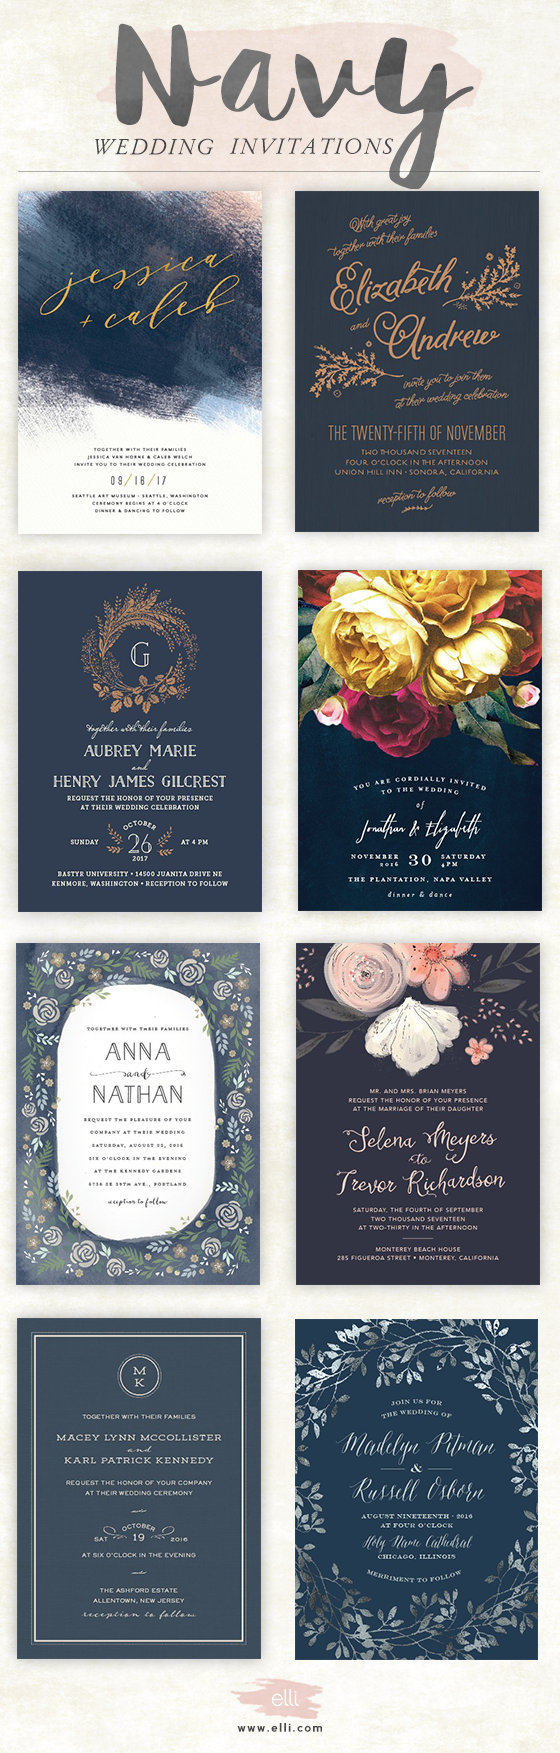 Full hd diy wedding rsvp cards for desktop pics now trending navy invitations from ellicom